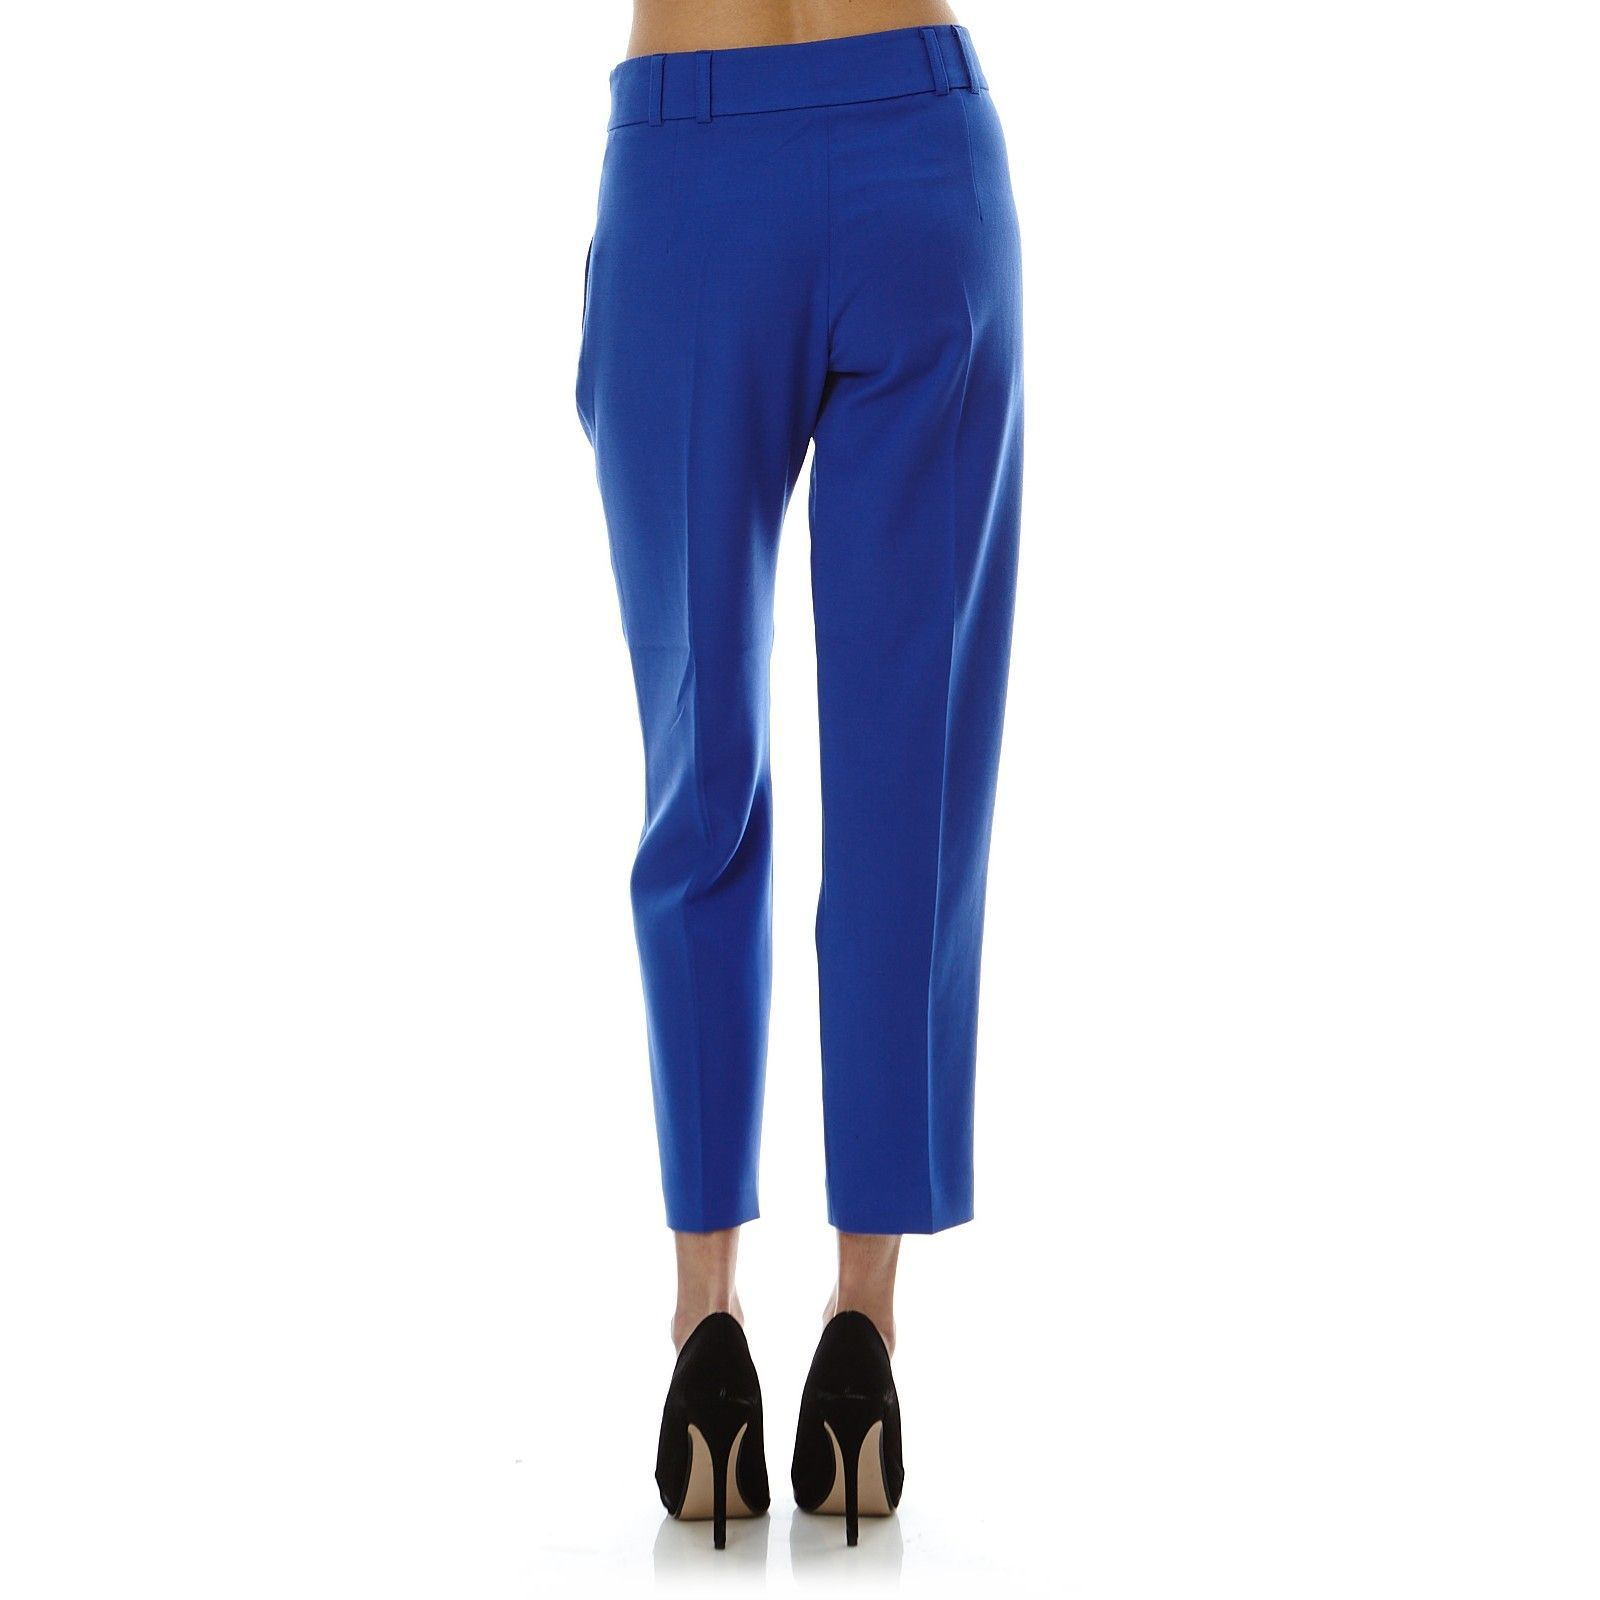 Connection Bleuet WhisperPantalon French Femme V R4AjL5